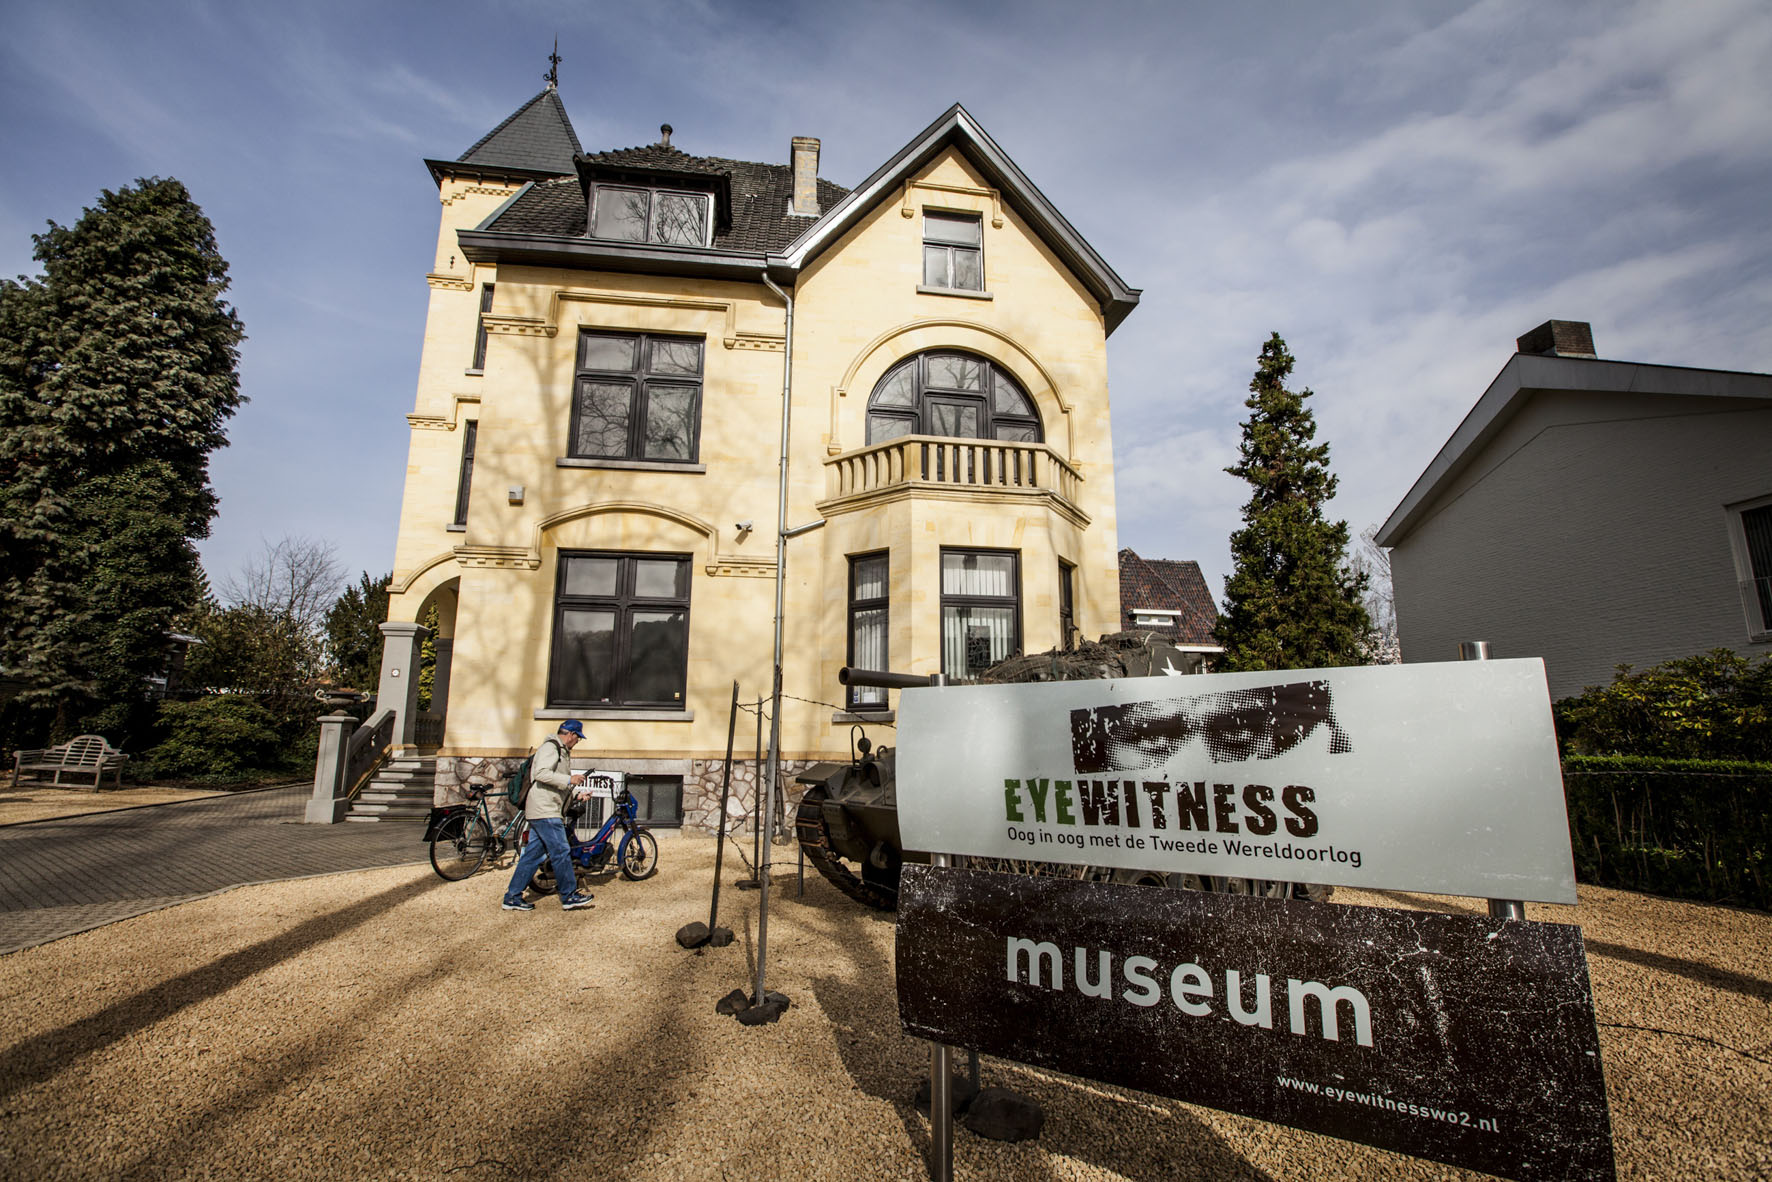 Eyewitness Museum